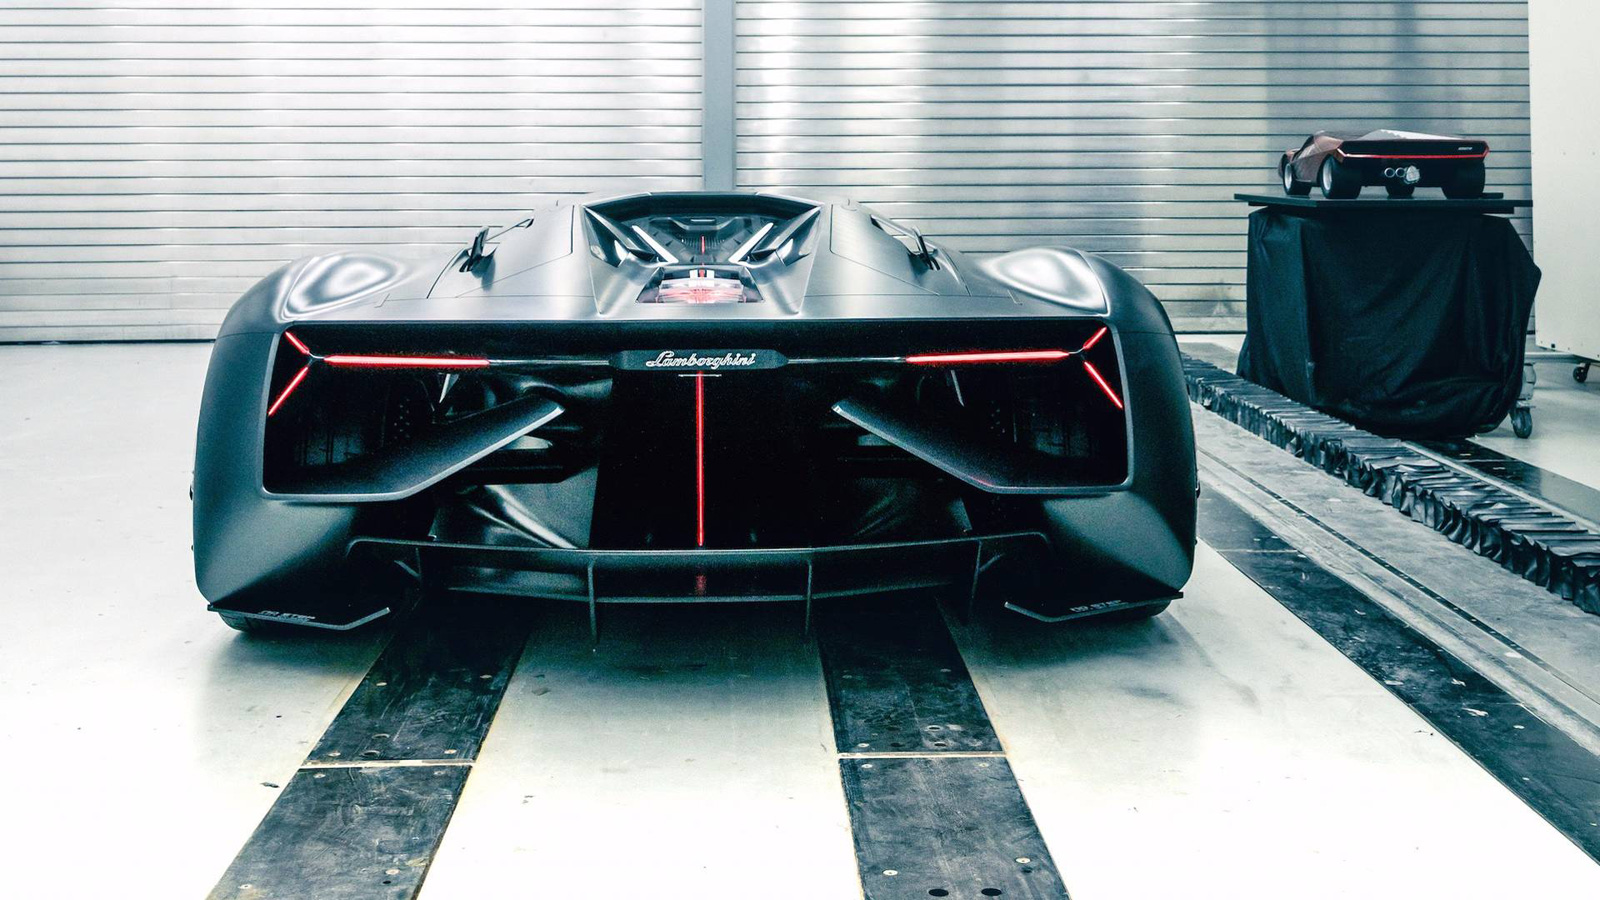 Rumor: Lamborghini Hybrid Hypercar Coming With 800+ HP